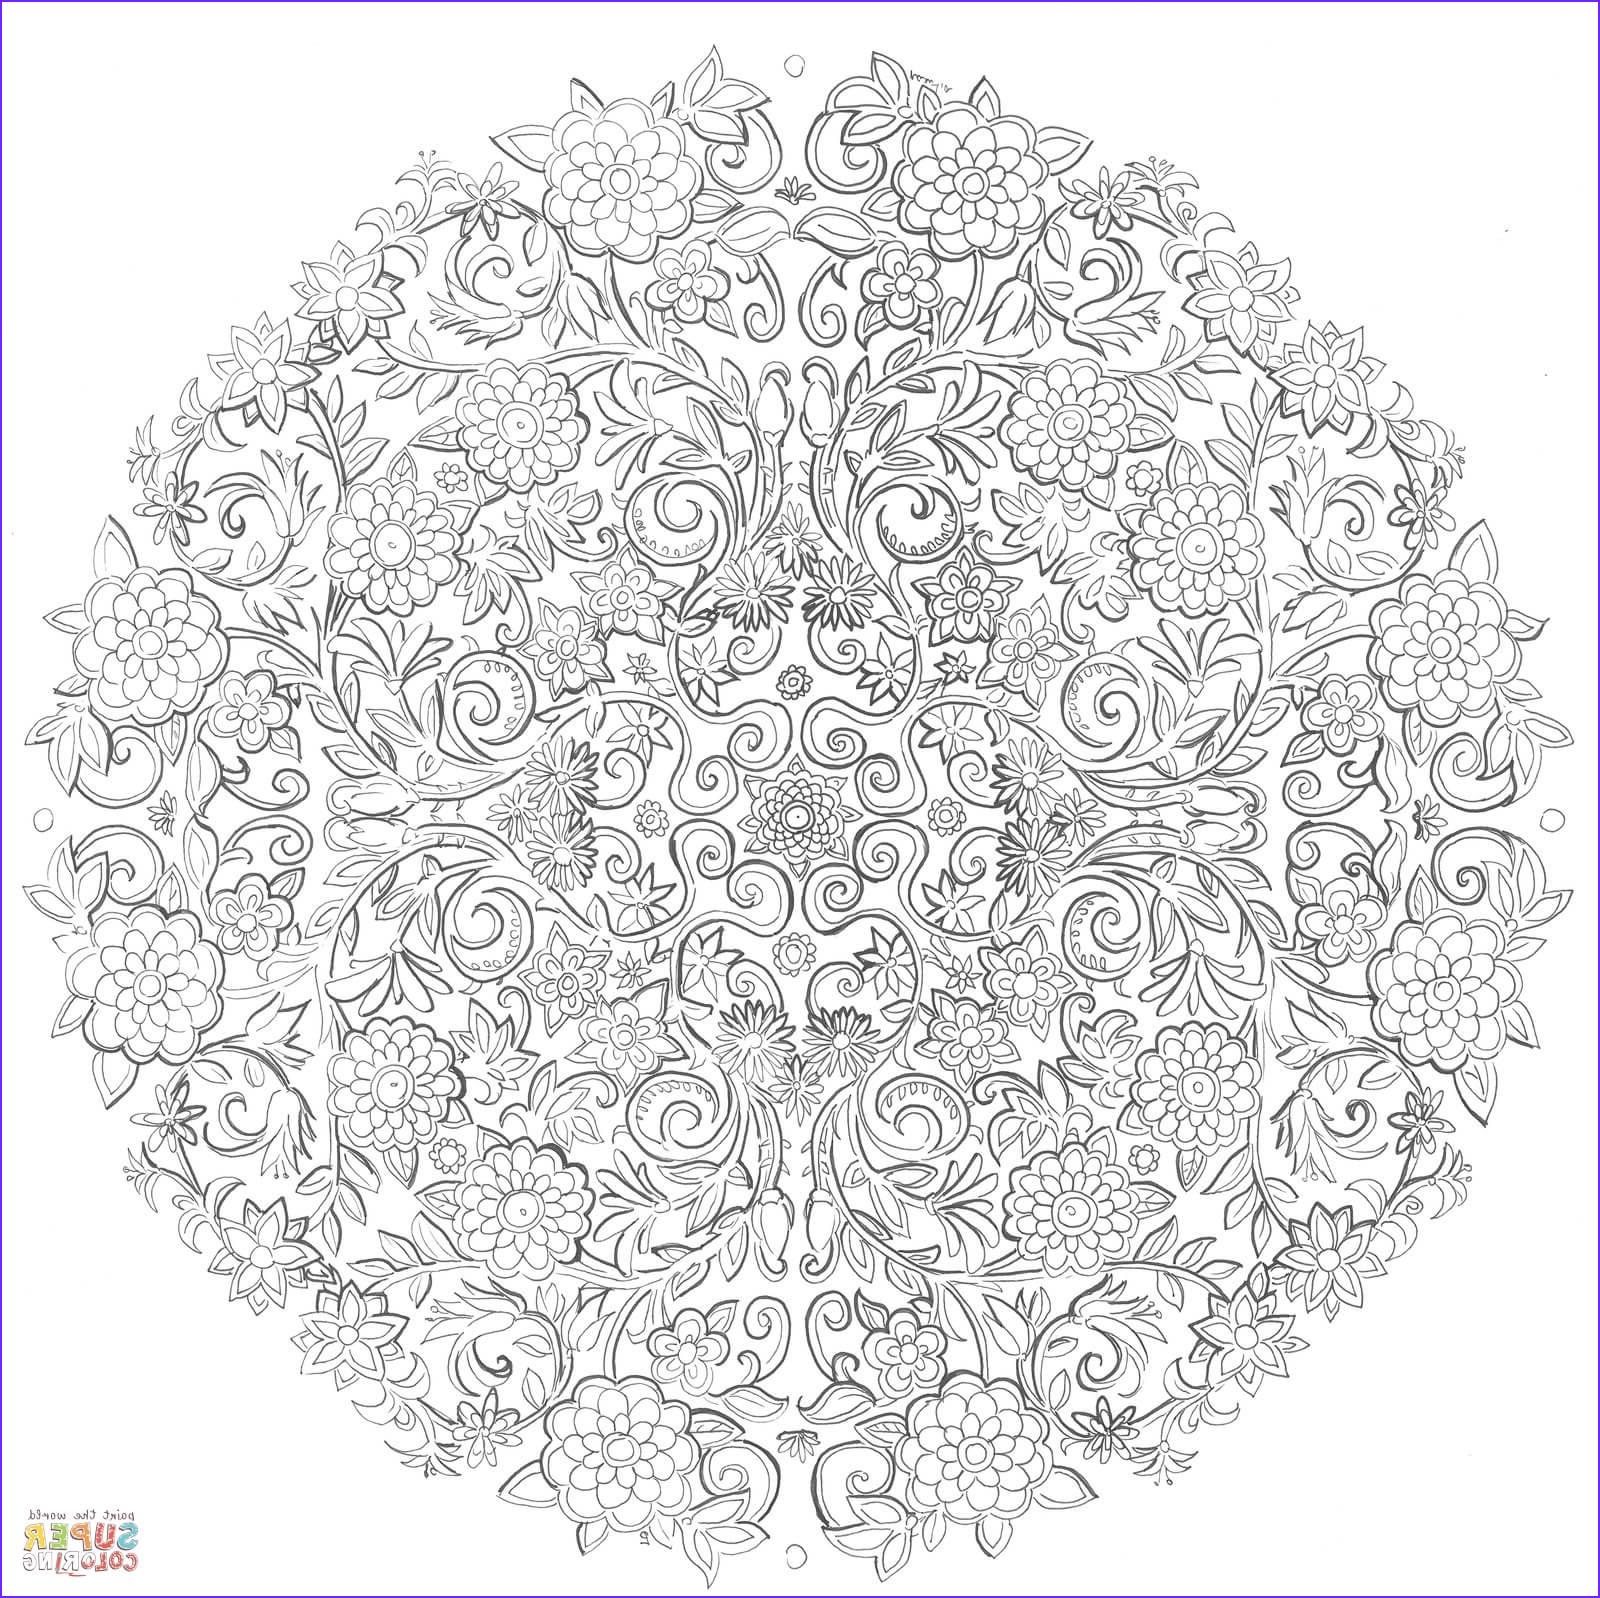 Secret Garden Coloring Cool Stock Last Days In the Secret Garden by Namtia Coloring Page